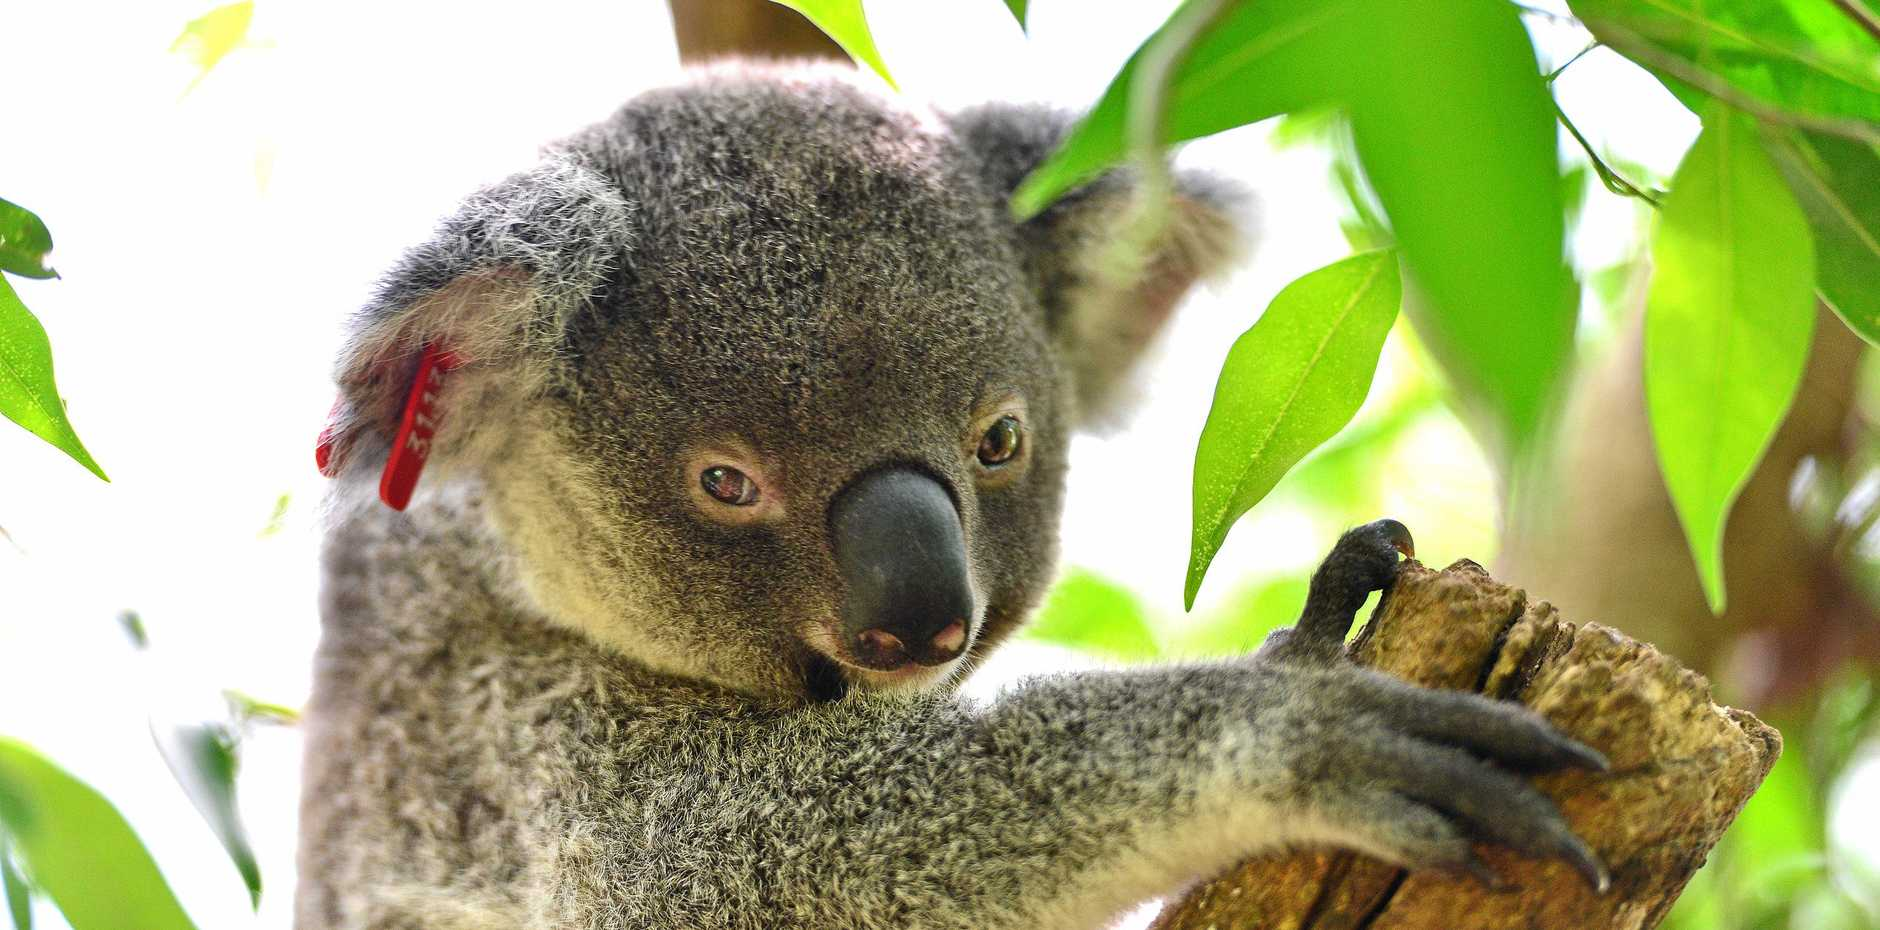 """""""Can we have the brave ambition to protect our endangered koalas and precious remnant vegetation?"""